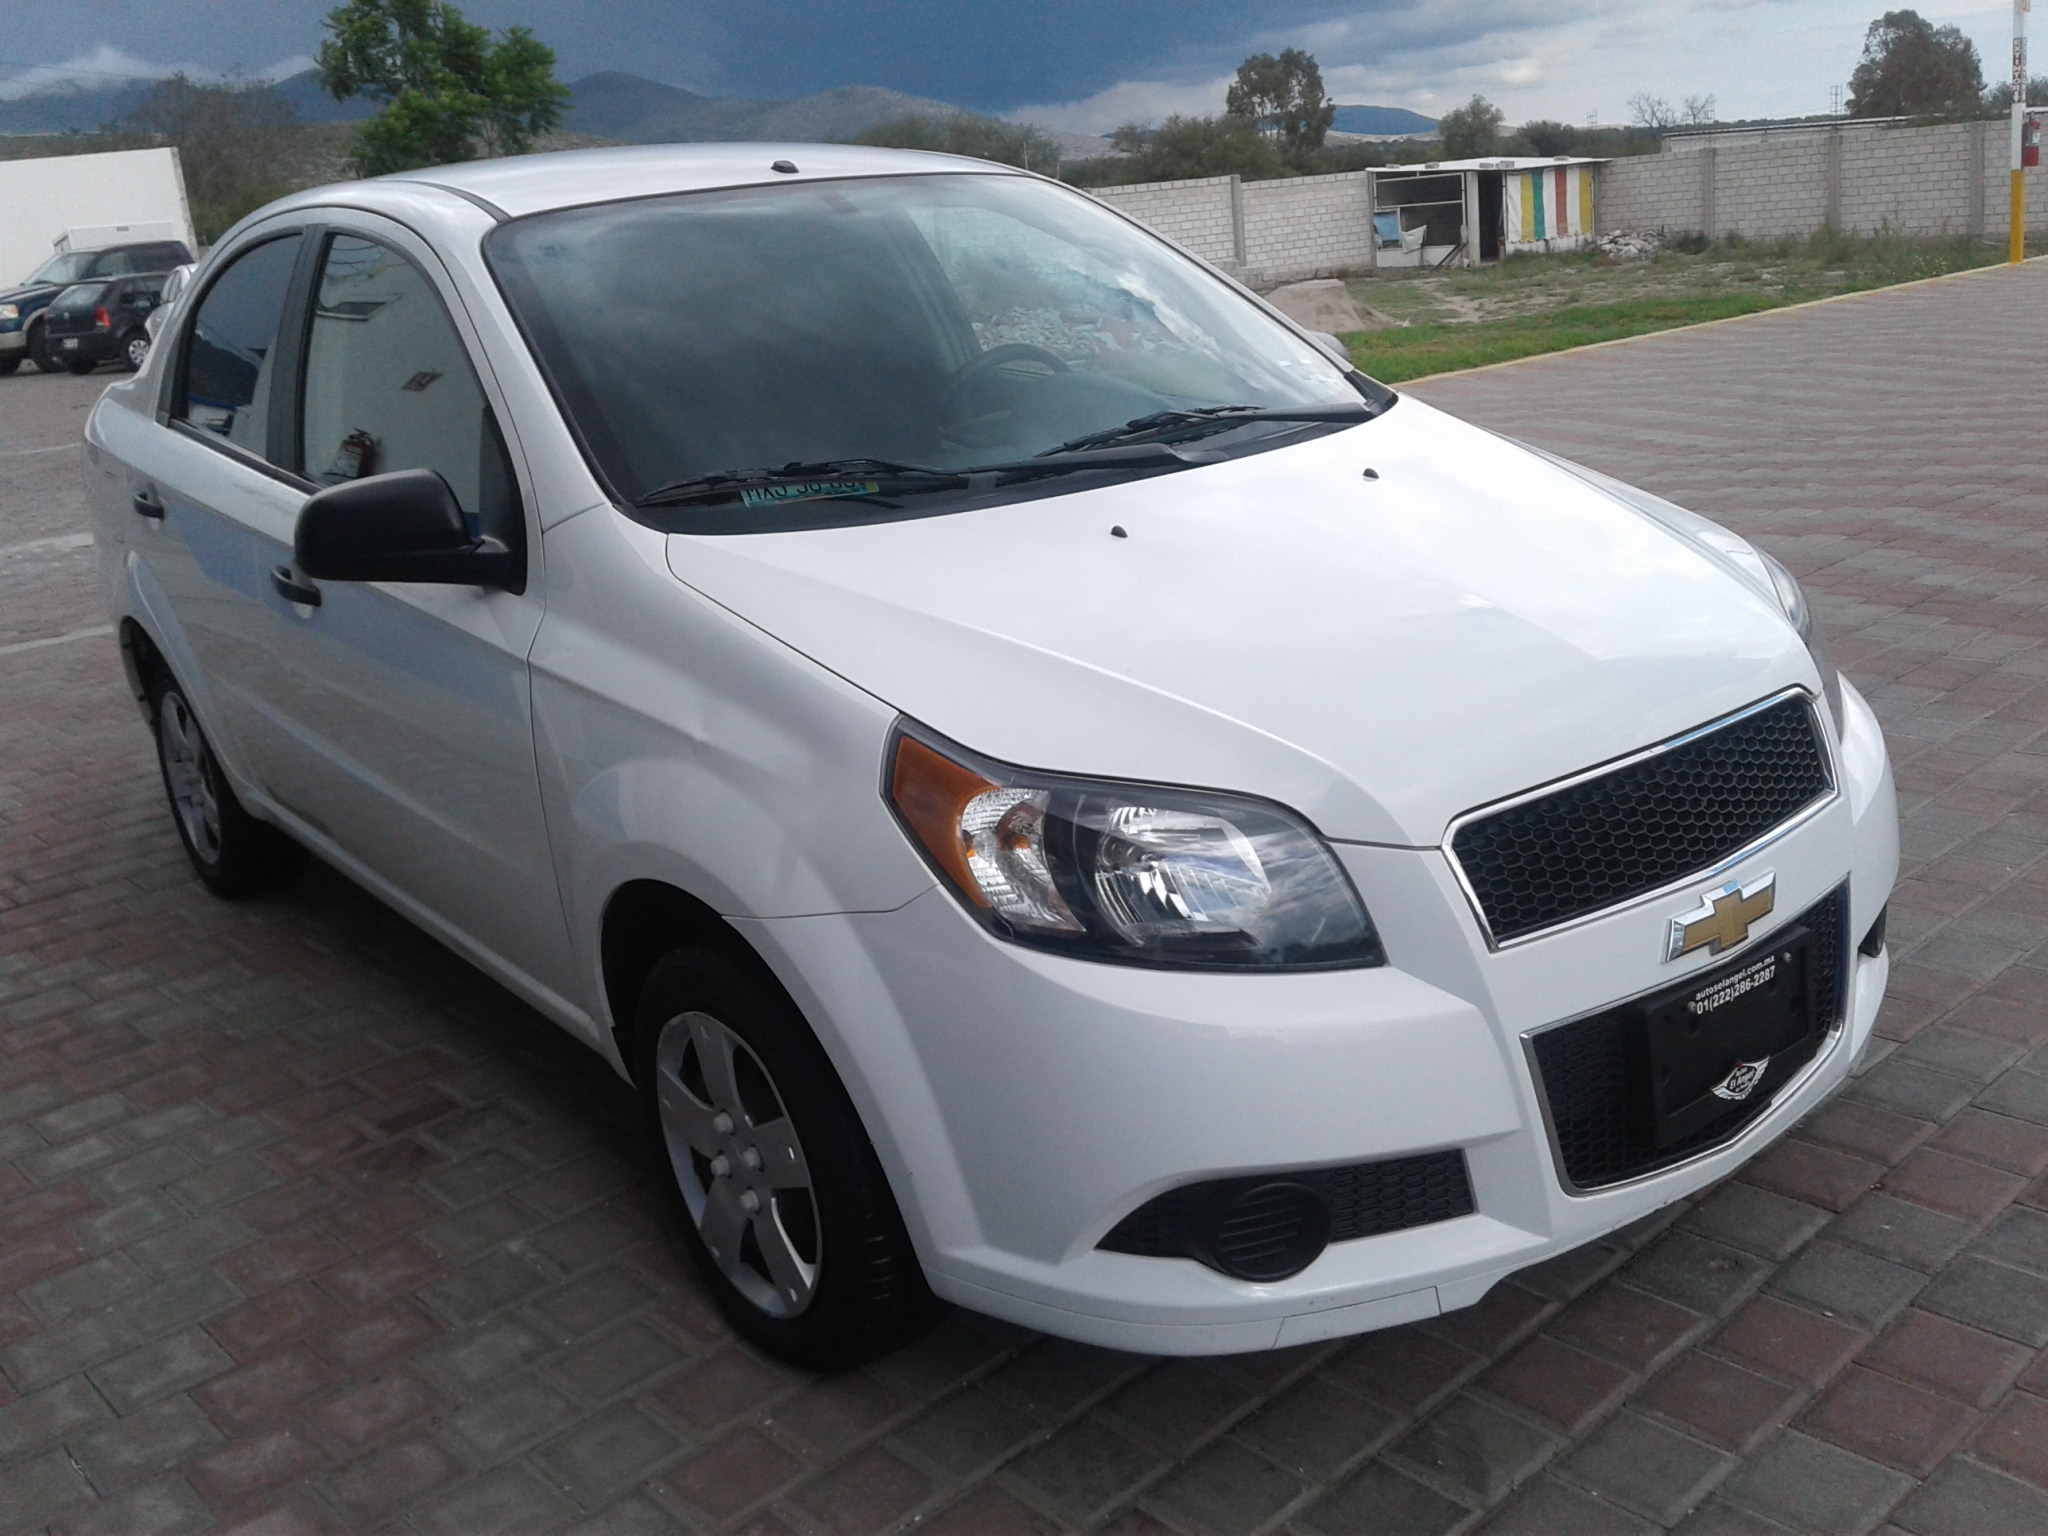 2006 chevy chevrolet aveo owners manual